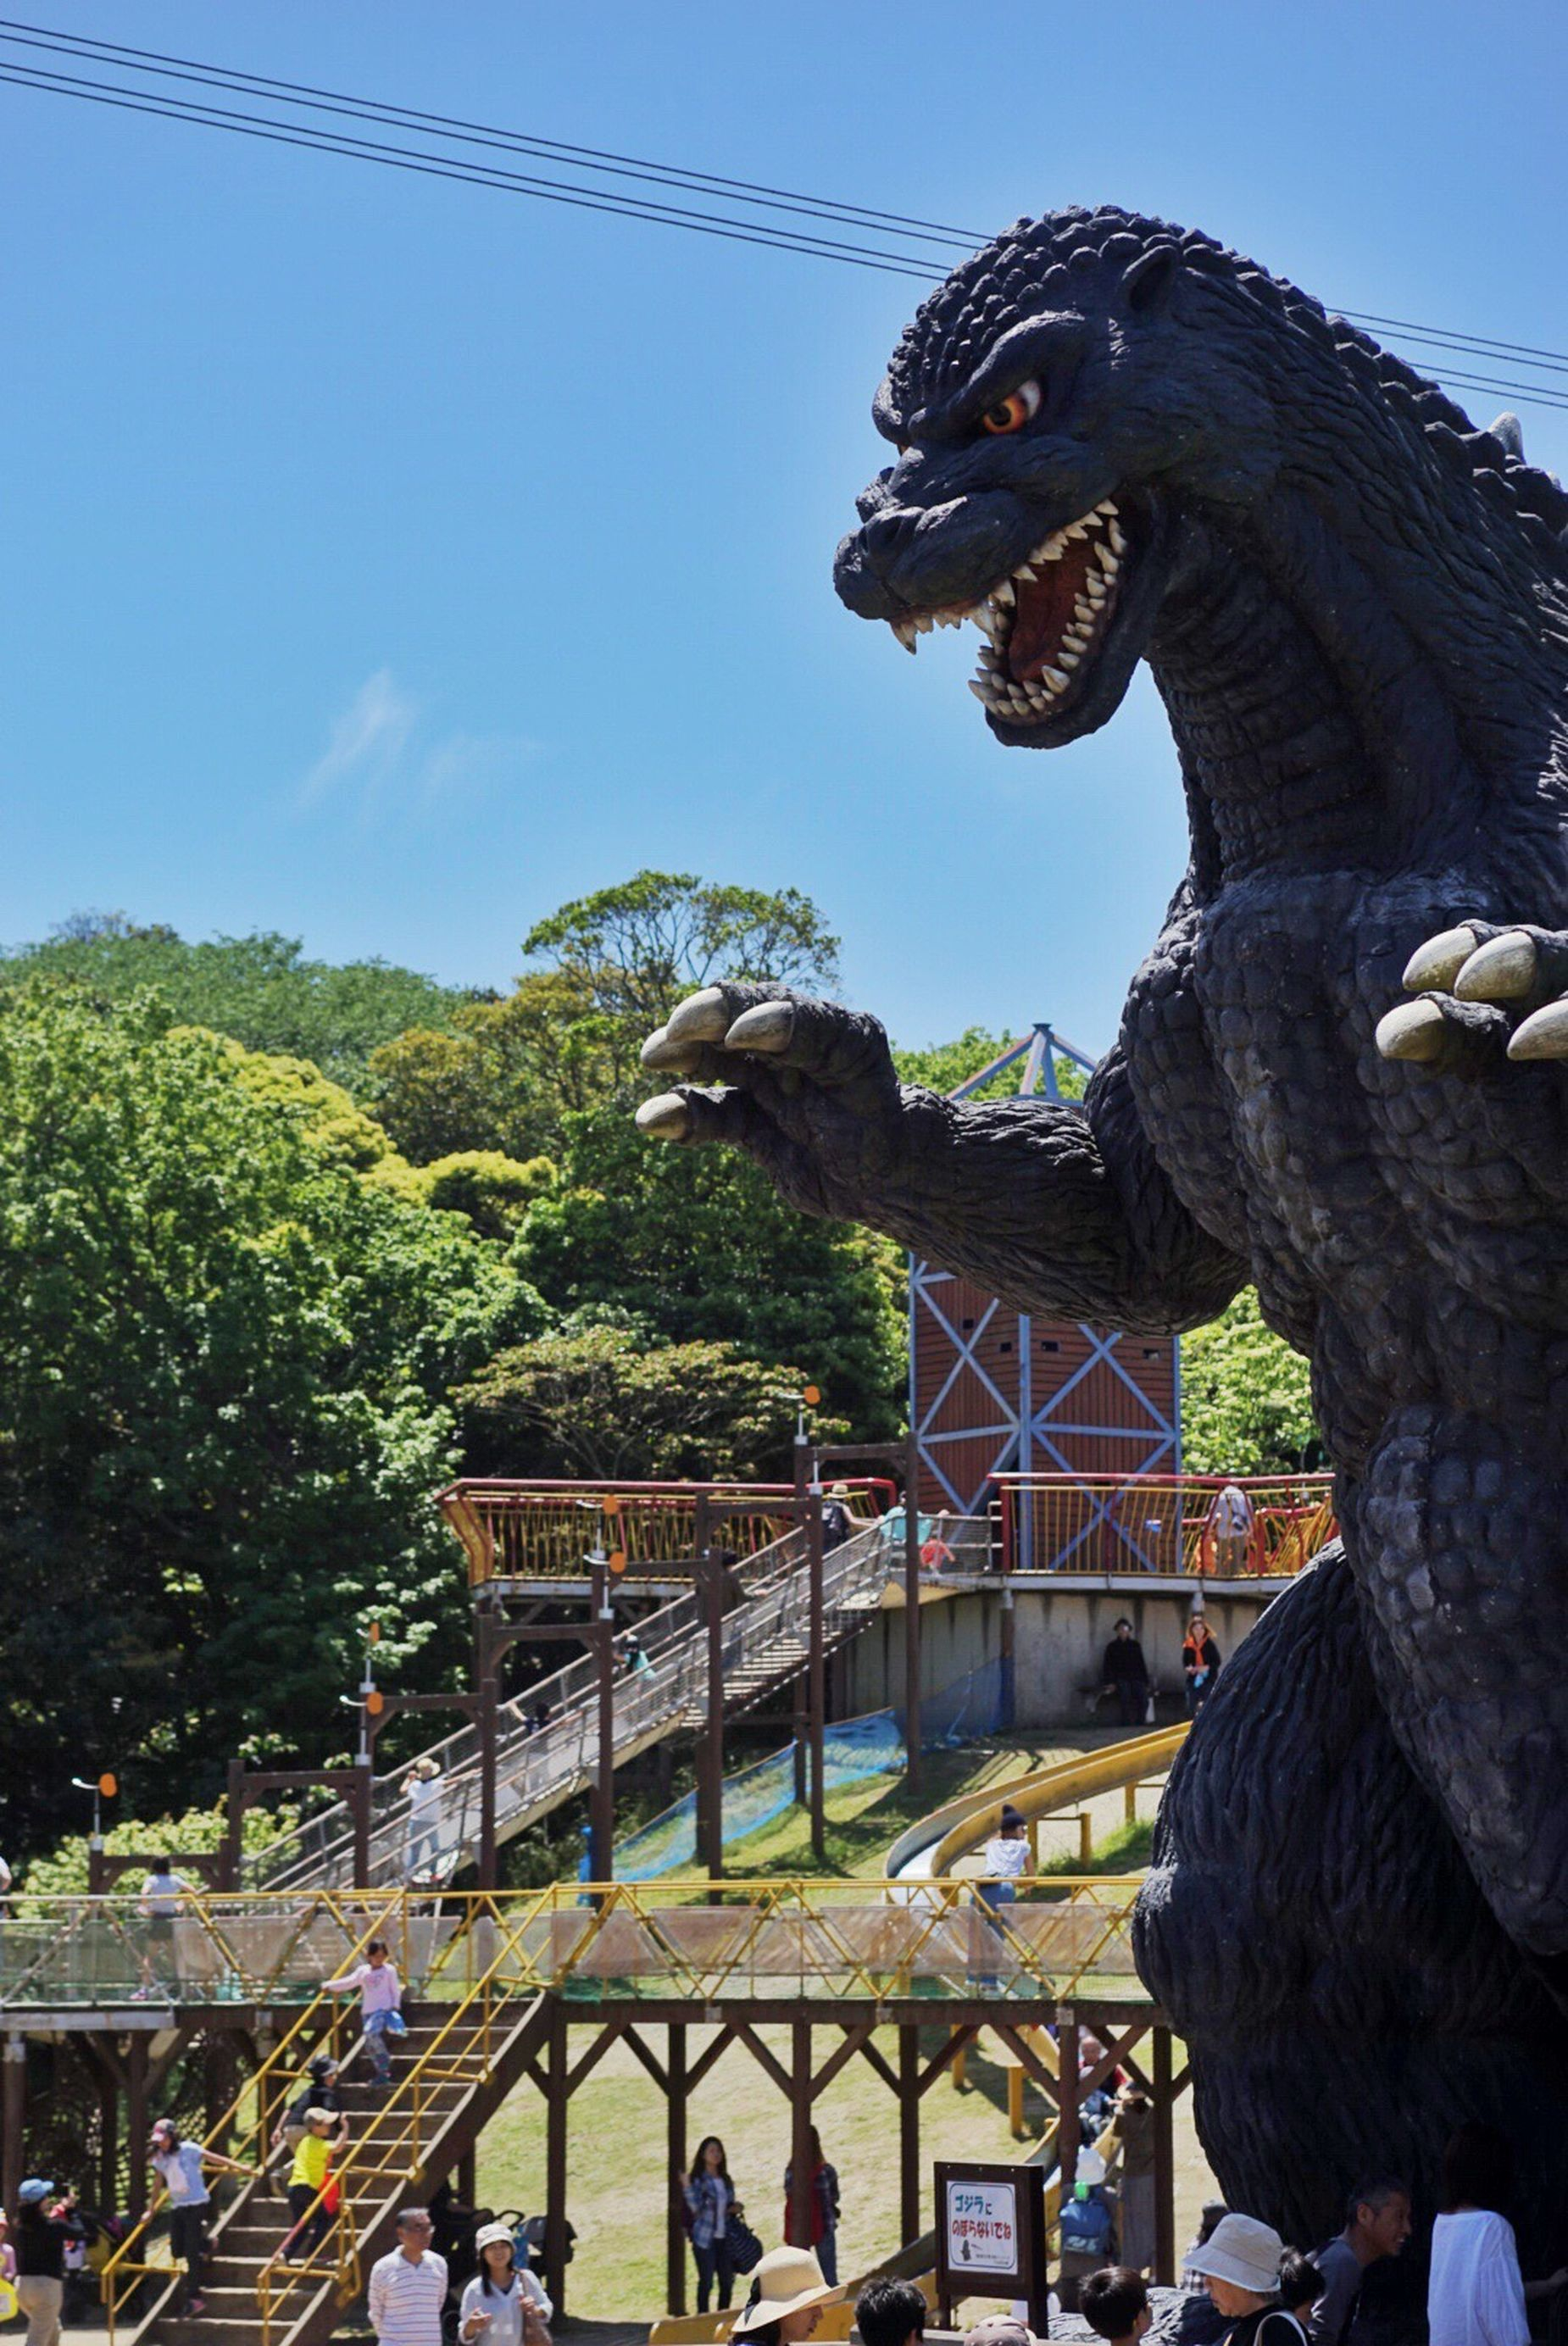 Sculpture Statue Animal Representation Art And Craft Dinosaur Day Outdoors History Sky Built Structure Animal Themes Architecture No People Lion - Feline Tree Nature Nature Collection Gozzira Kaiju Blue Sky EyeEm Best Shots